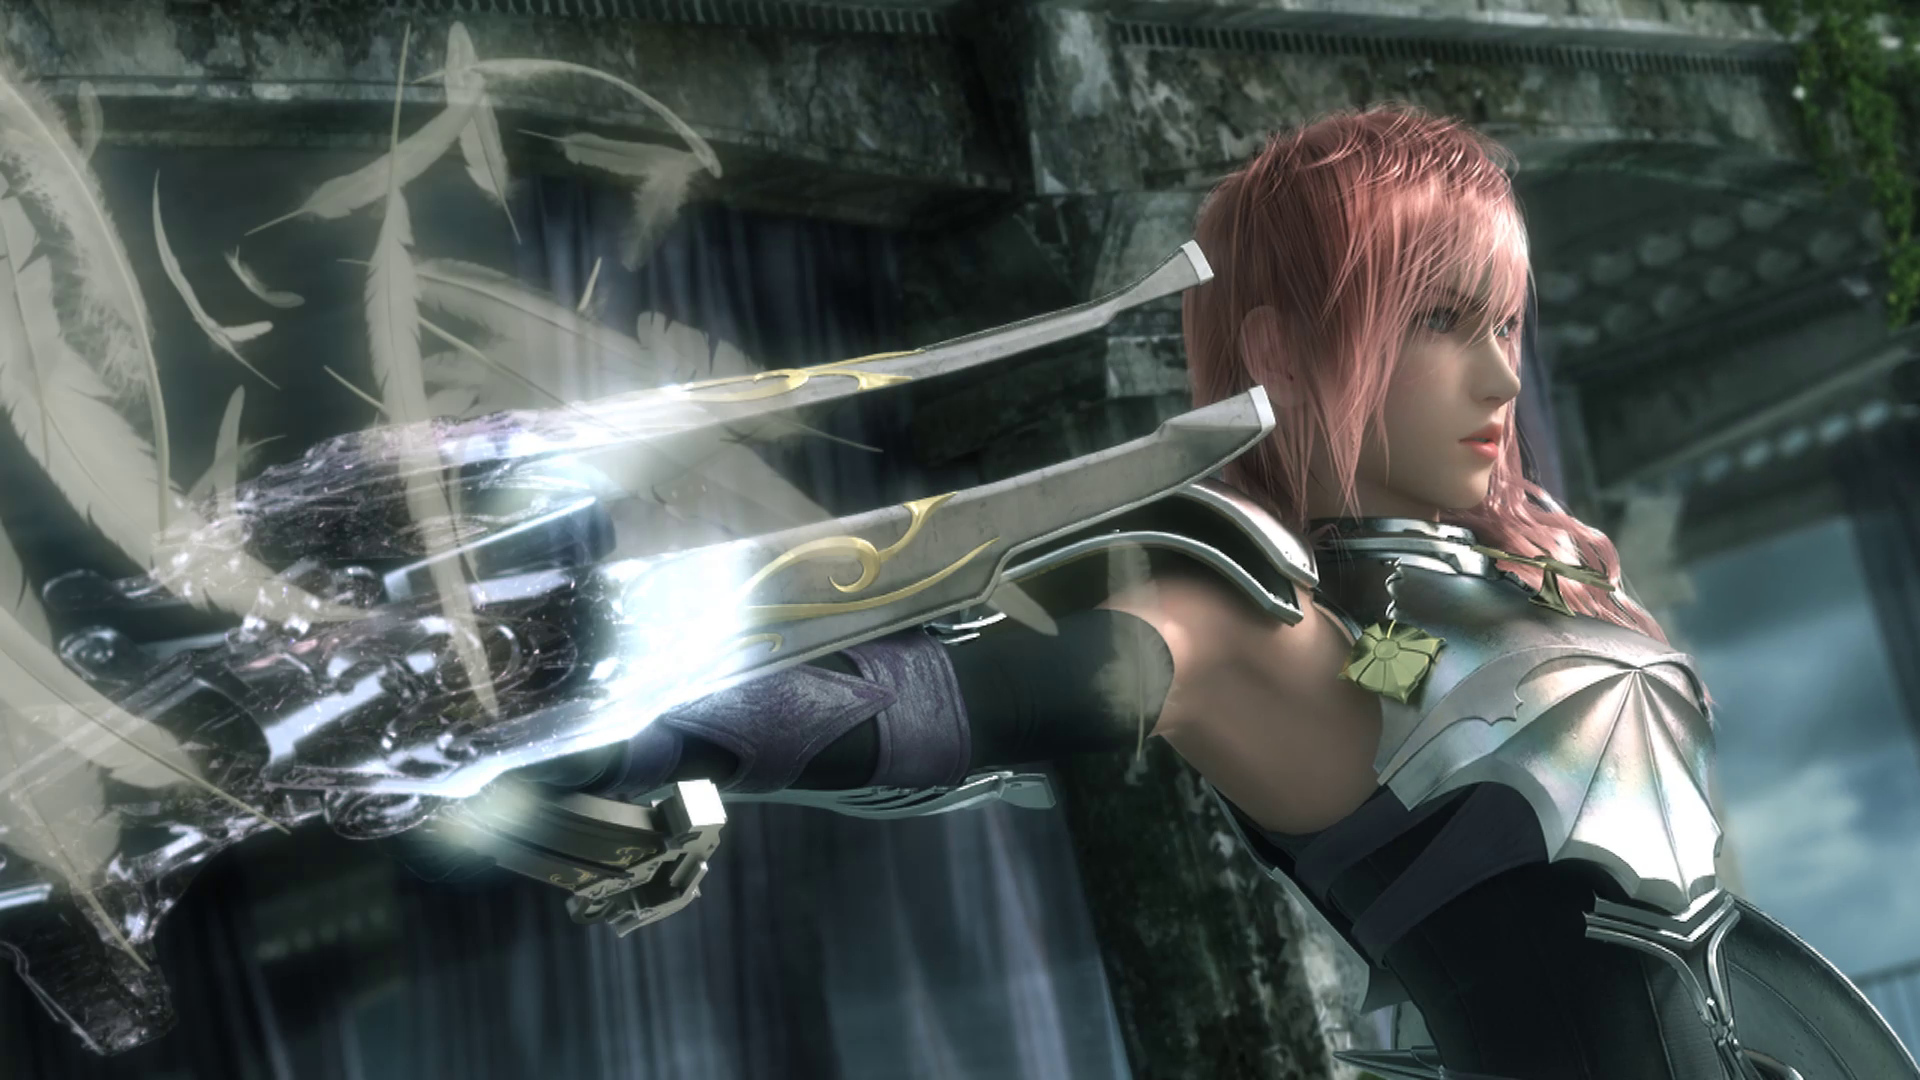 awesome final fantasy wallpaper 43974